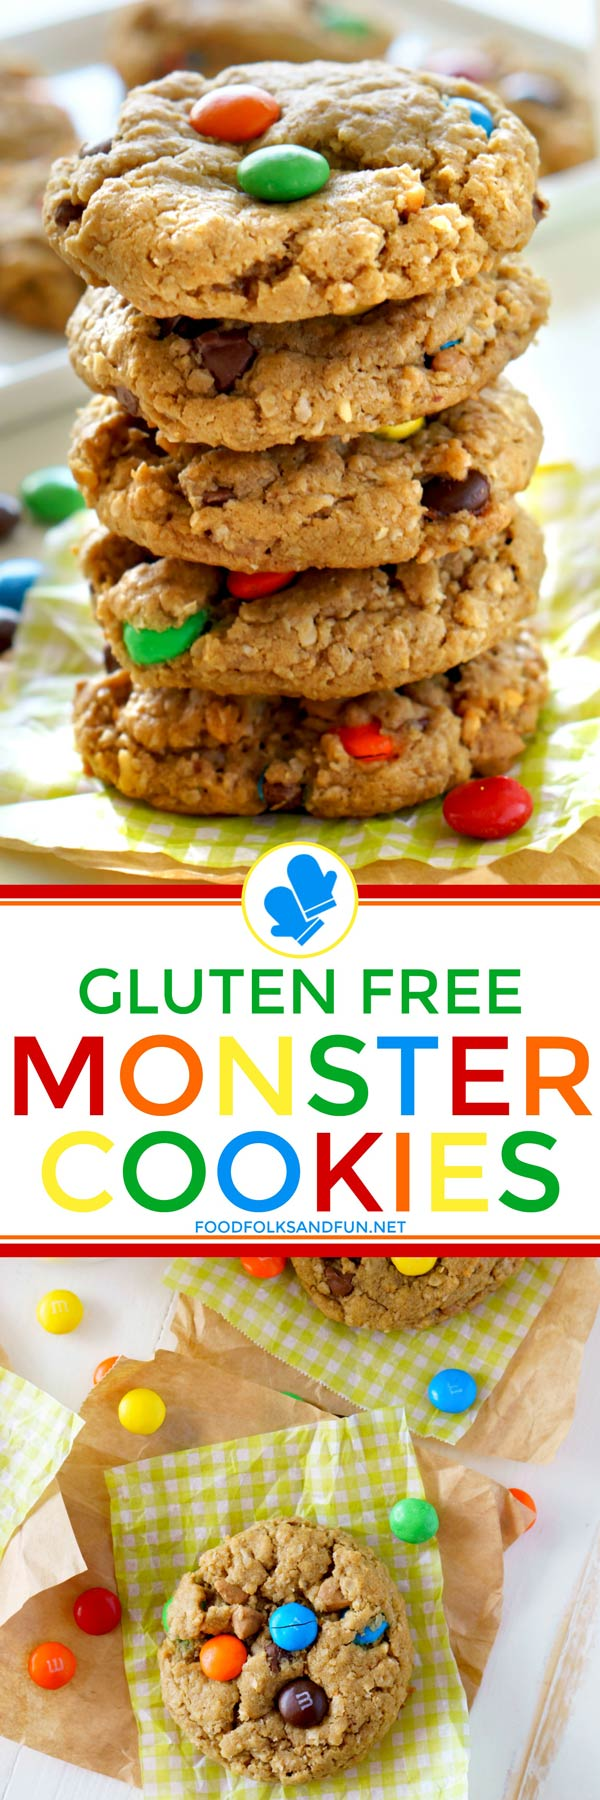 Whether you're looking for a gluten-free cookie recipe or not, you must make these Monster Cookies! They are THE BEST monster cookies you will ever make! via @foodfolksandfun